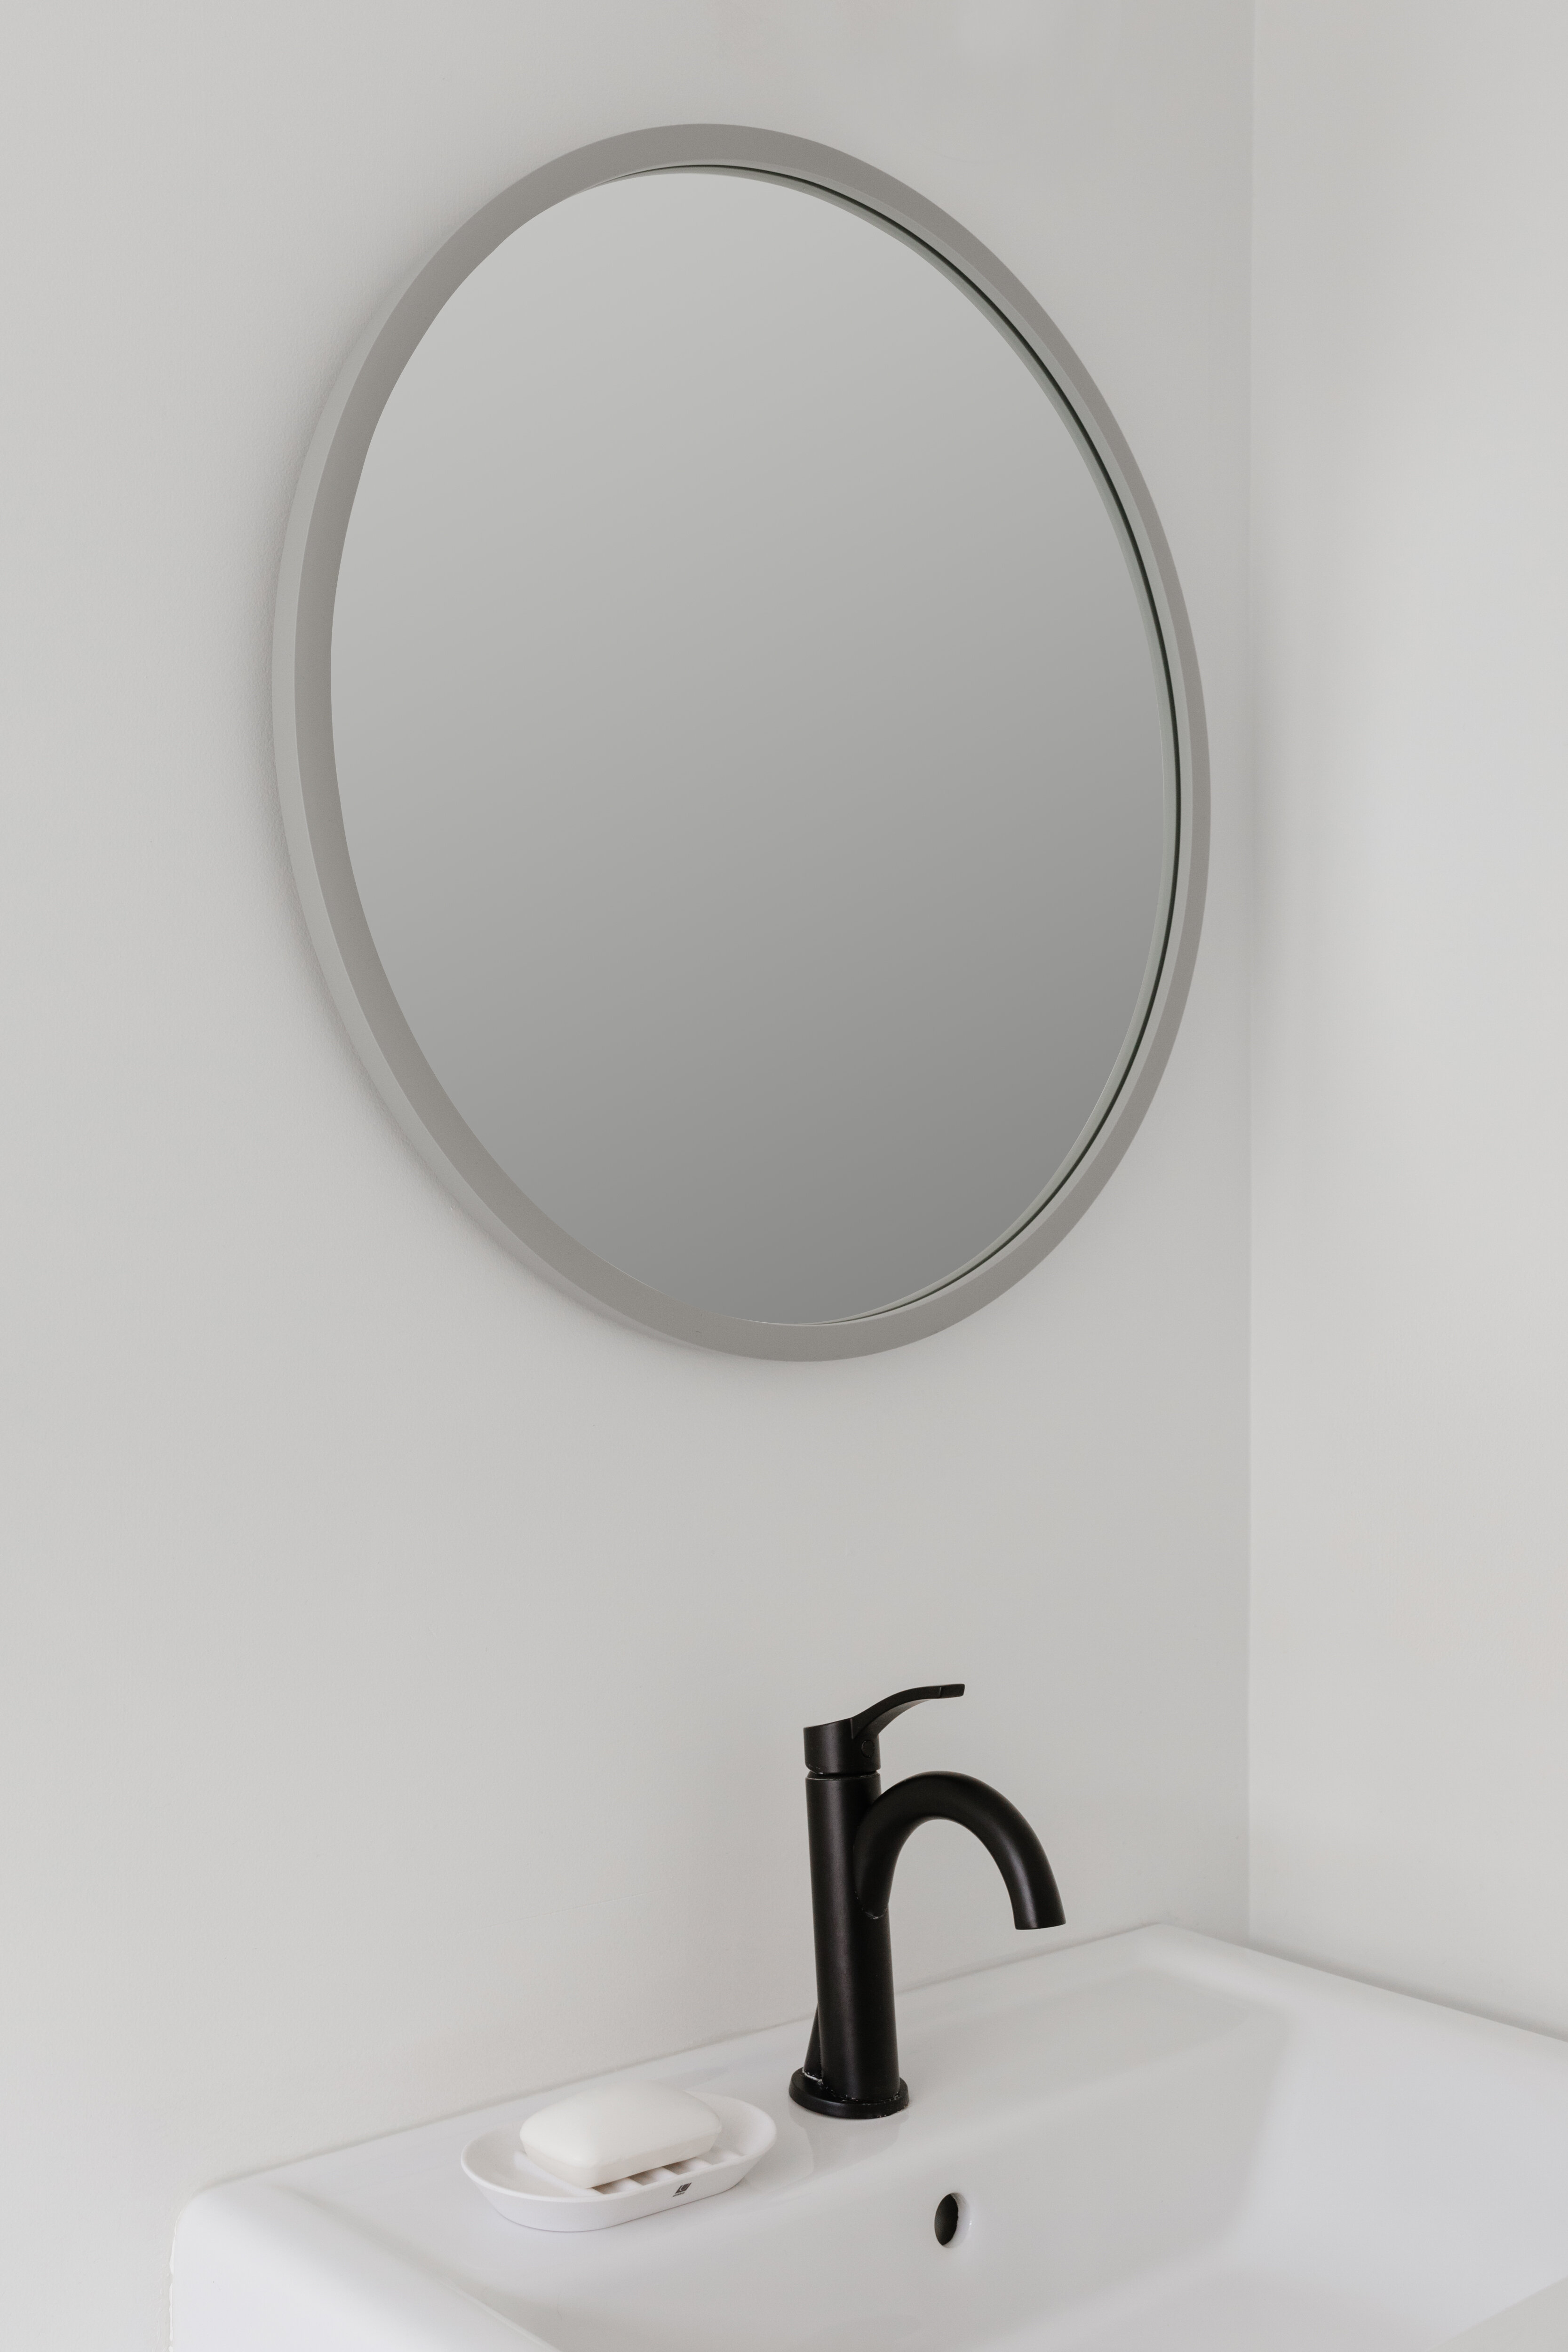 Umbra Hub Modern And Contemporary Accent Mirror pertaining to Hub Modern And Contemporary Accent Mirrors (Image 27 of 30)